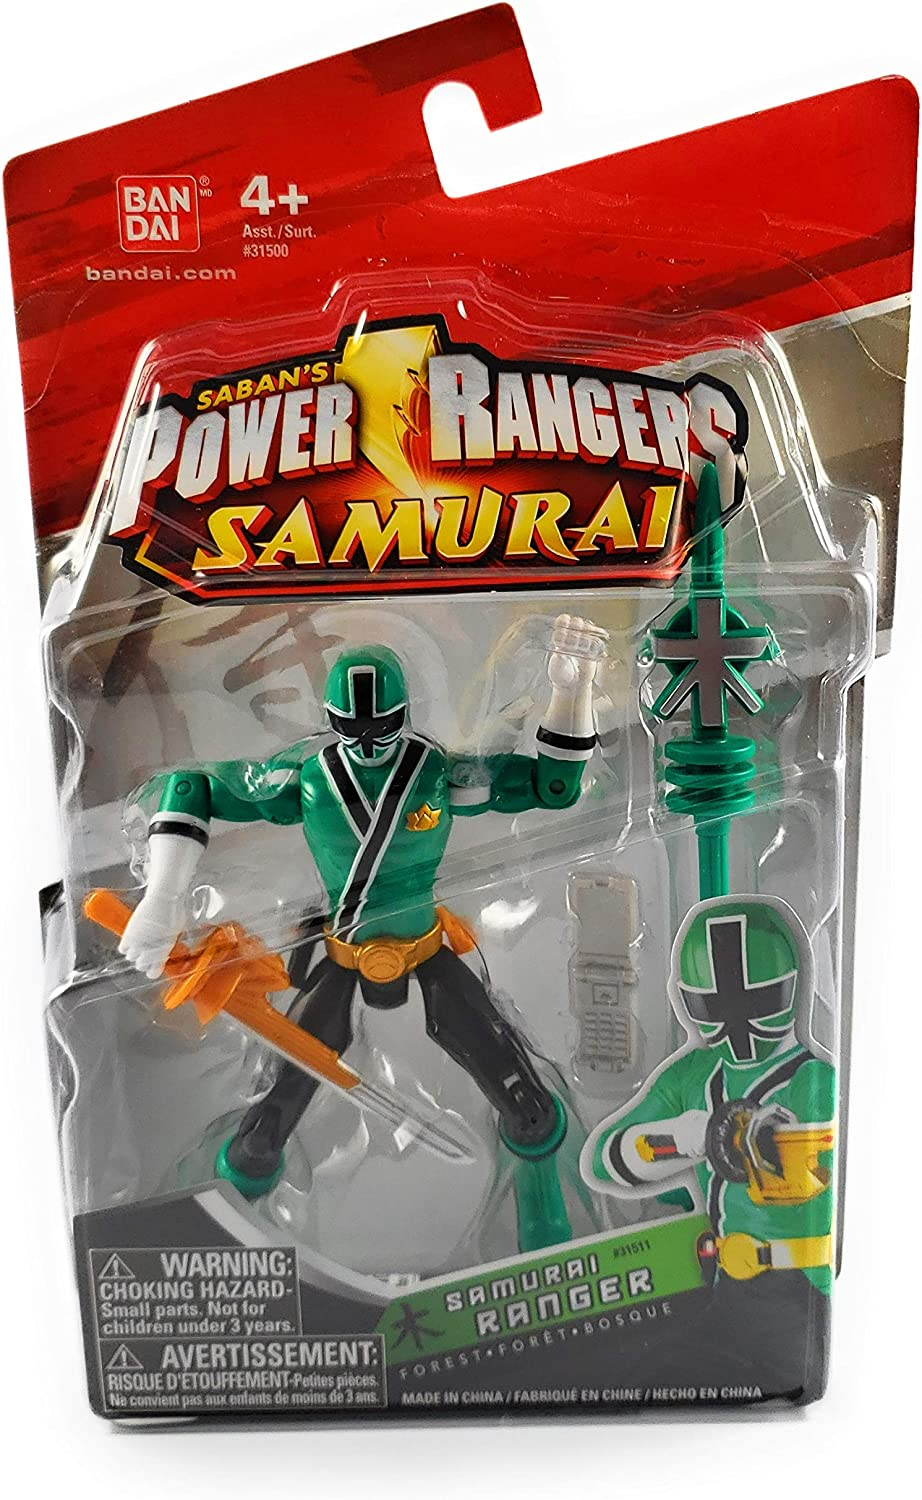 Power Ranger Samurai Samurai Ranger Forest Action Figure by Power Ranger Samurai: Amazon.es: Juguetes y juegos